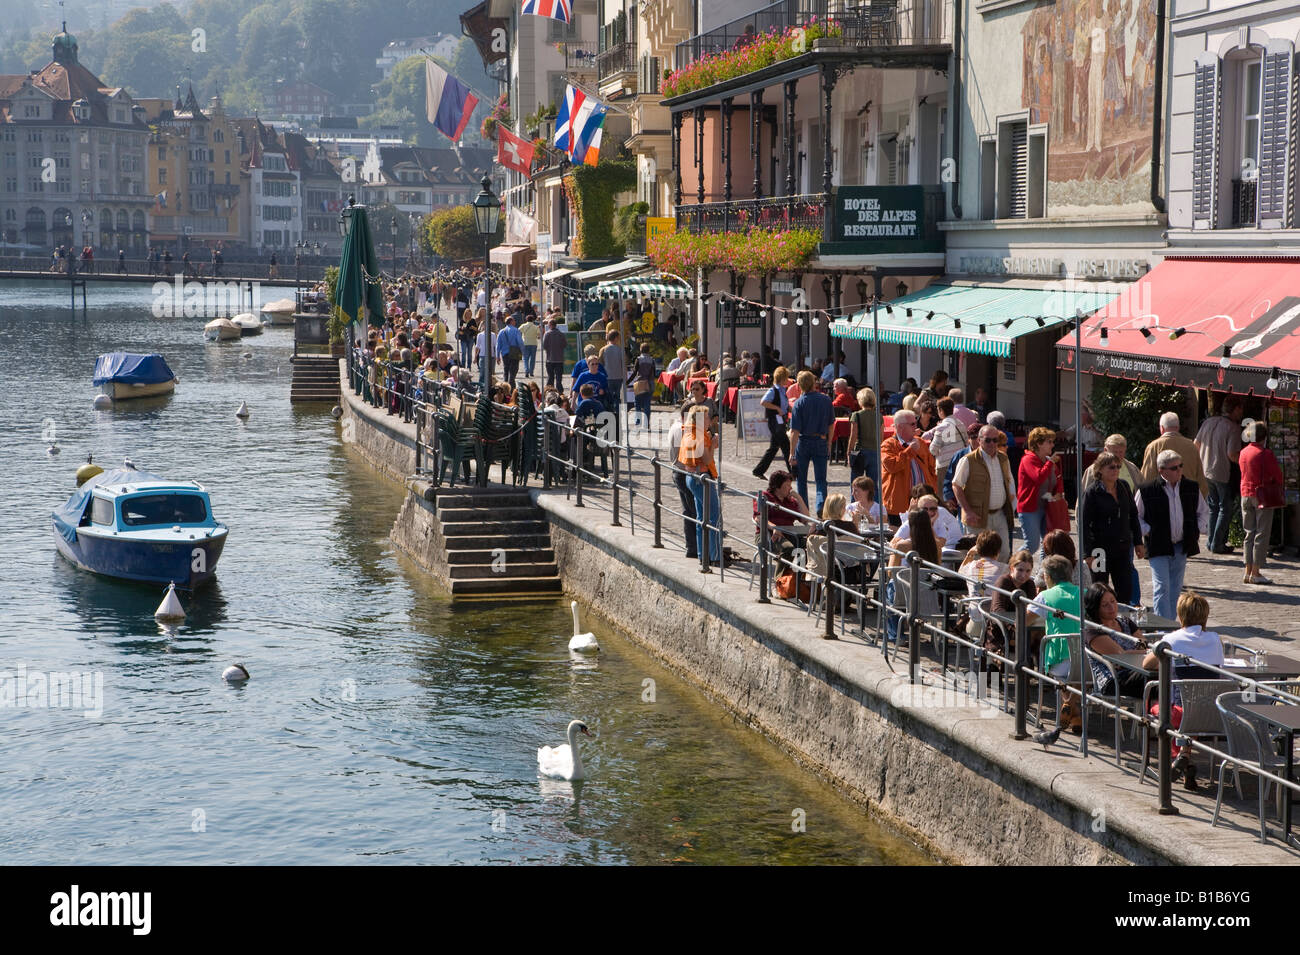 Switzterland, Lucerne, Reuss river, sidewalk cafes - Stock Image